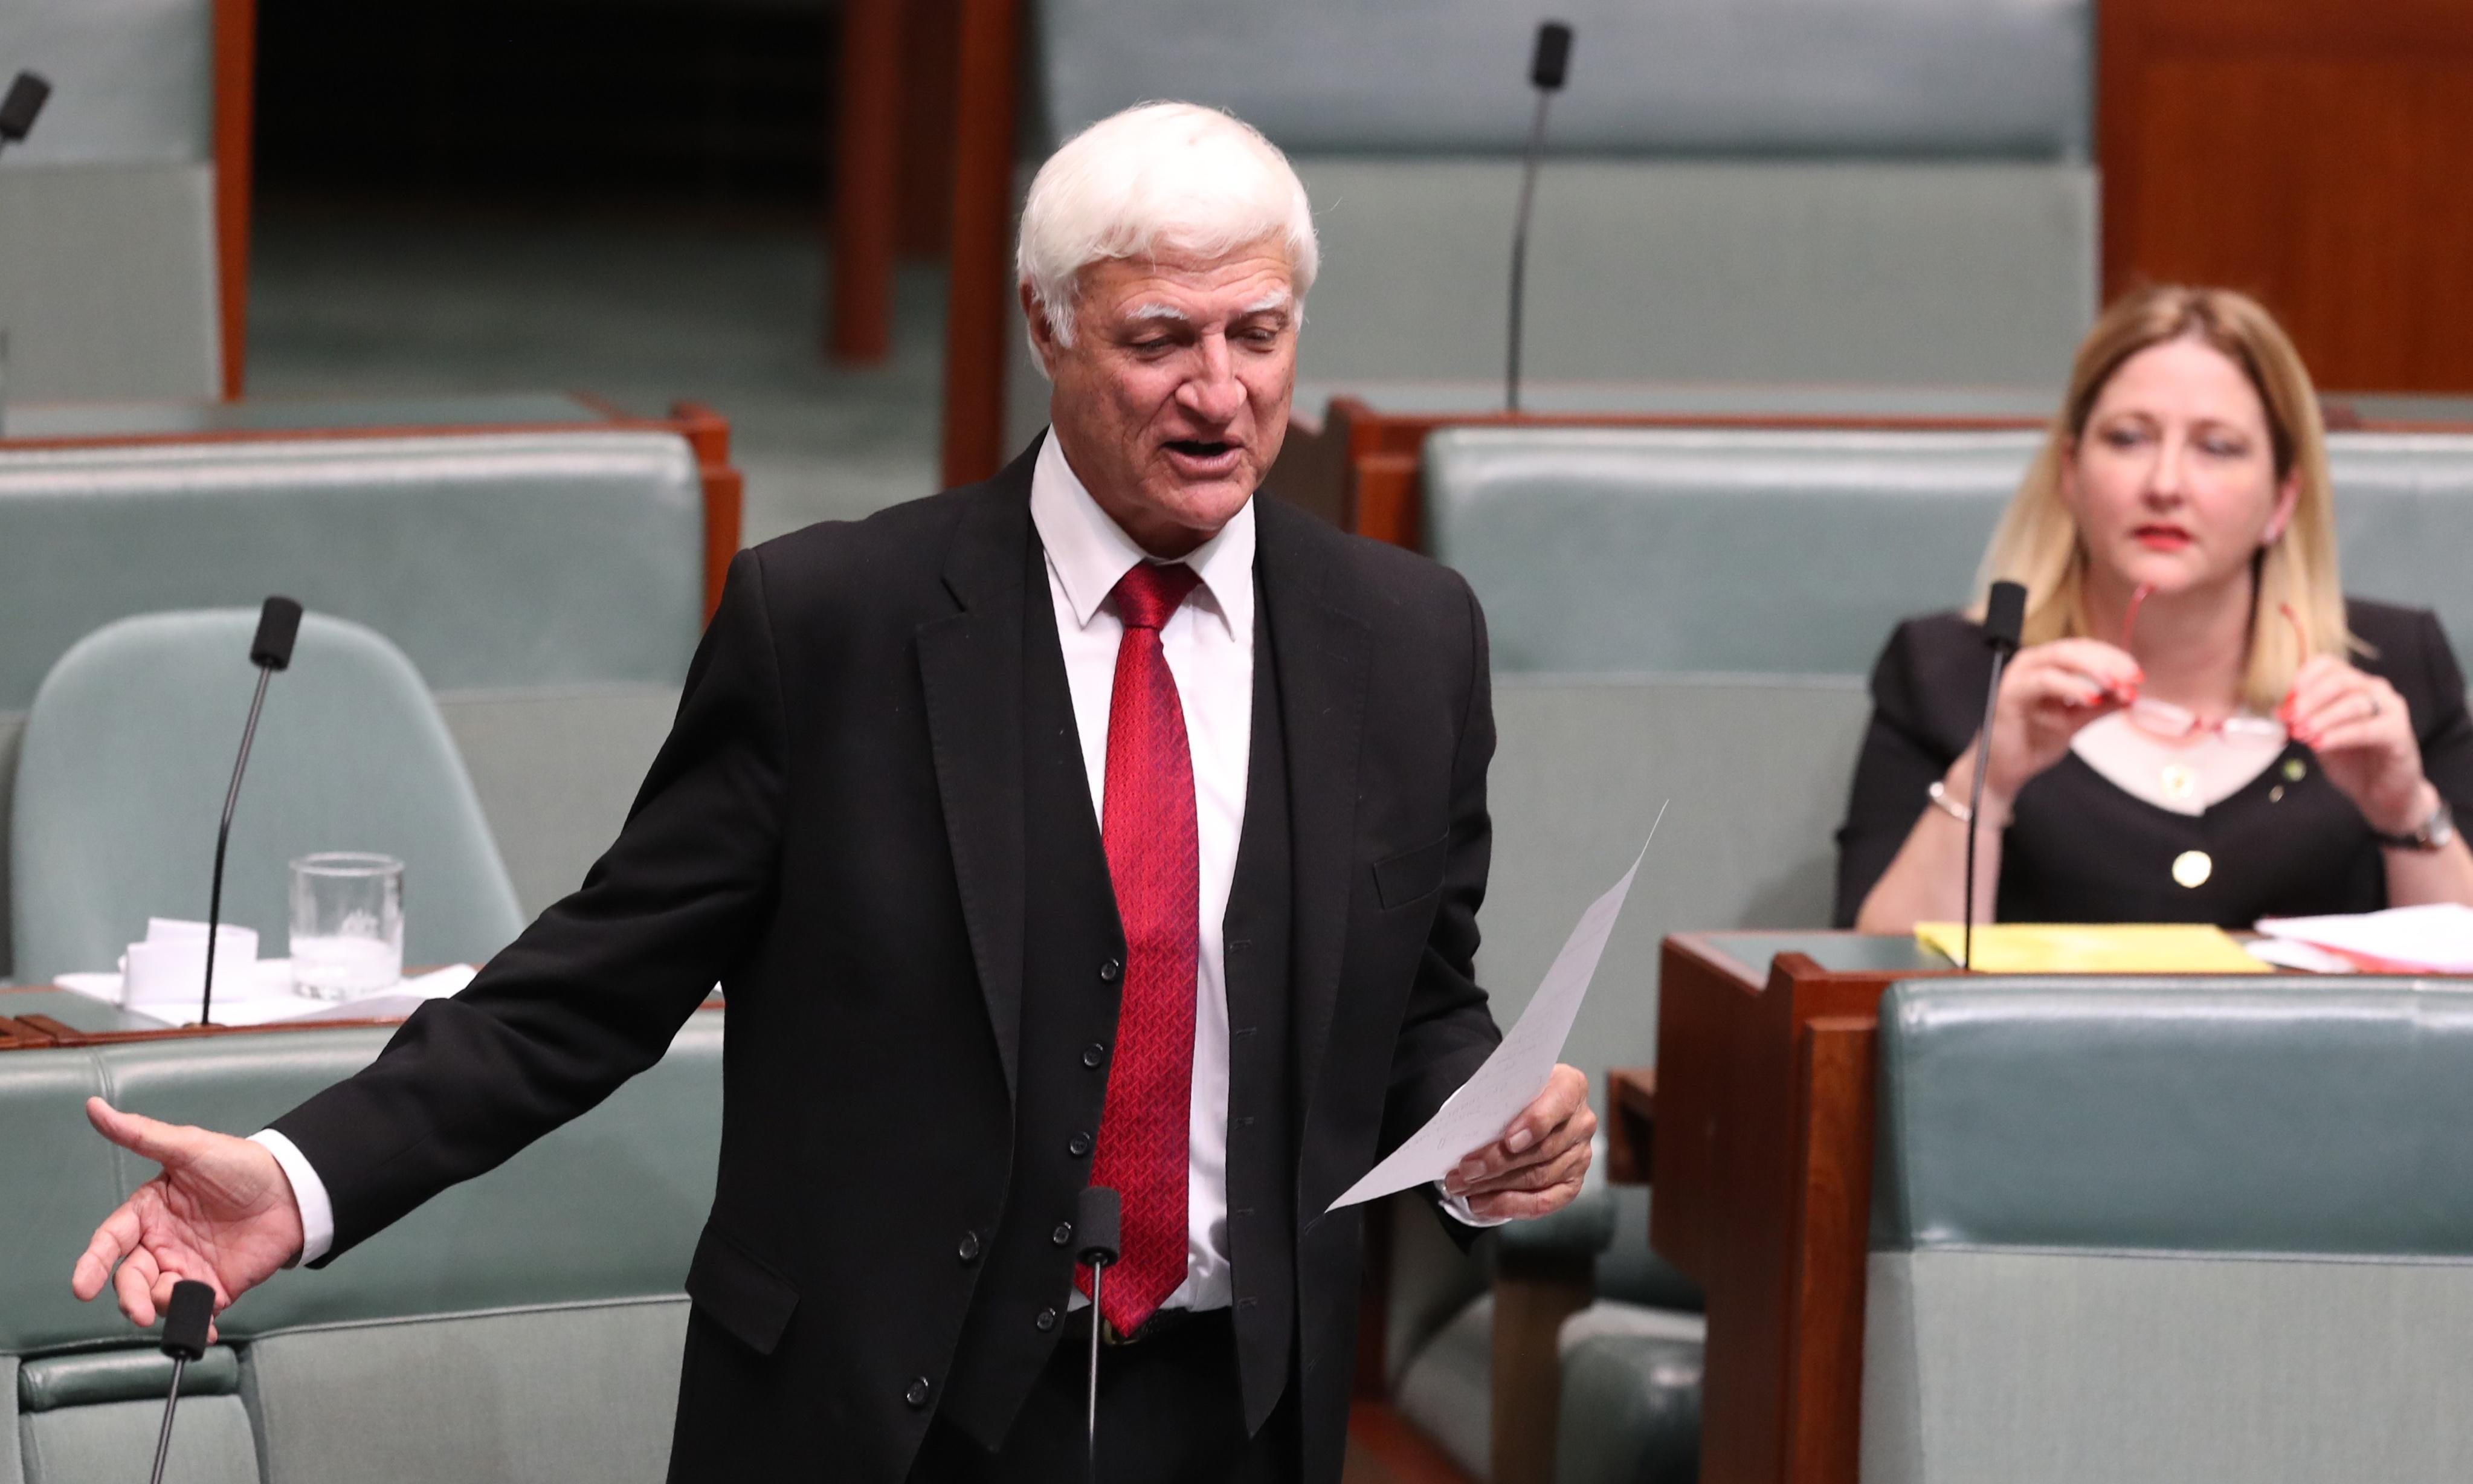 Bob Katter threatens to recall parliament unless Coalition moves on banking reform